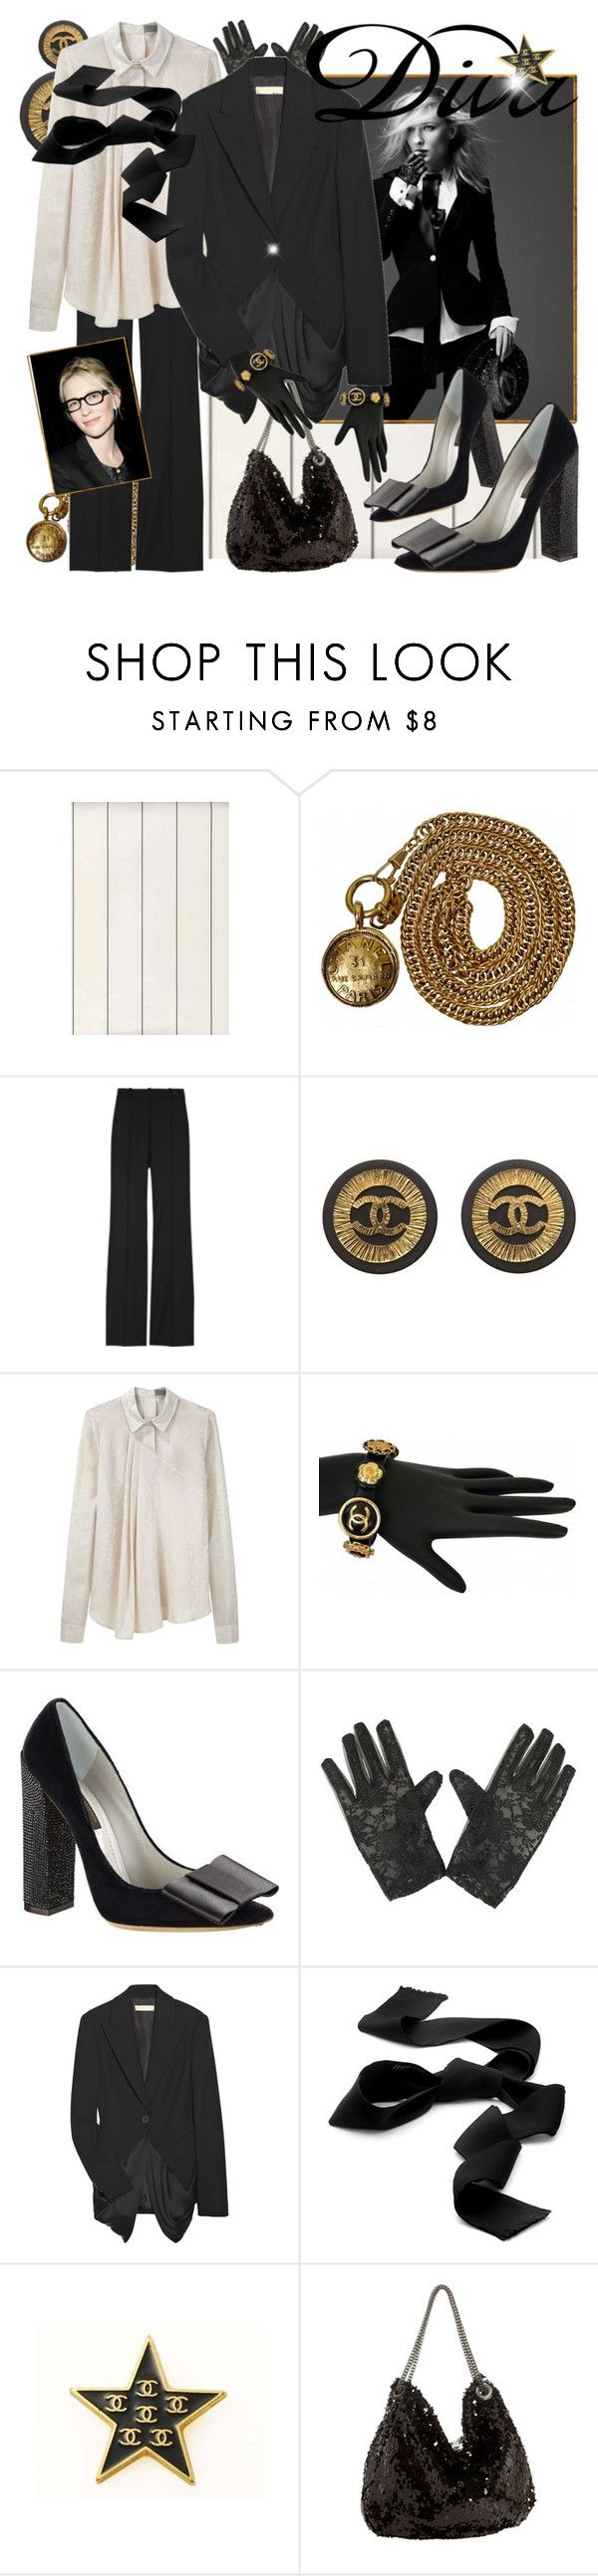 """""""Cate Diva II"""" by bullygrrl ❤ liked on Polyvore featuring Ralph Lauren, Chanel, Michael Kors, Felix, Preen, Louis Vuitton, Forever 21, Hermès, DIVA and Melie Bianco"""